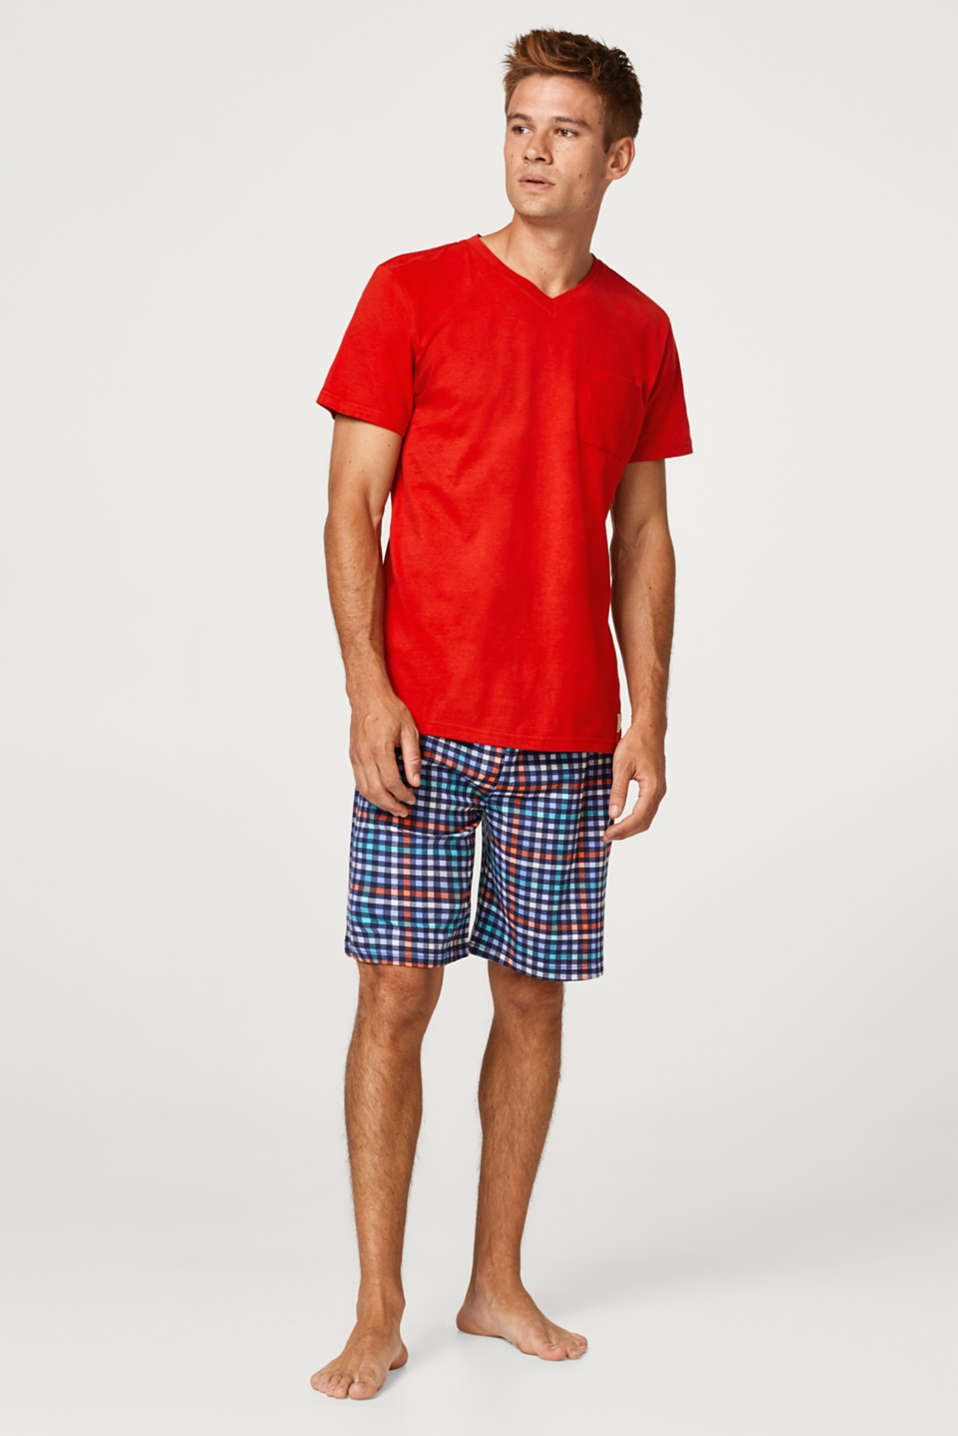 Esprit - T-shirt and Bermuda shorts, 100% cotton